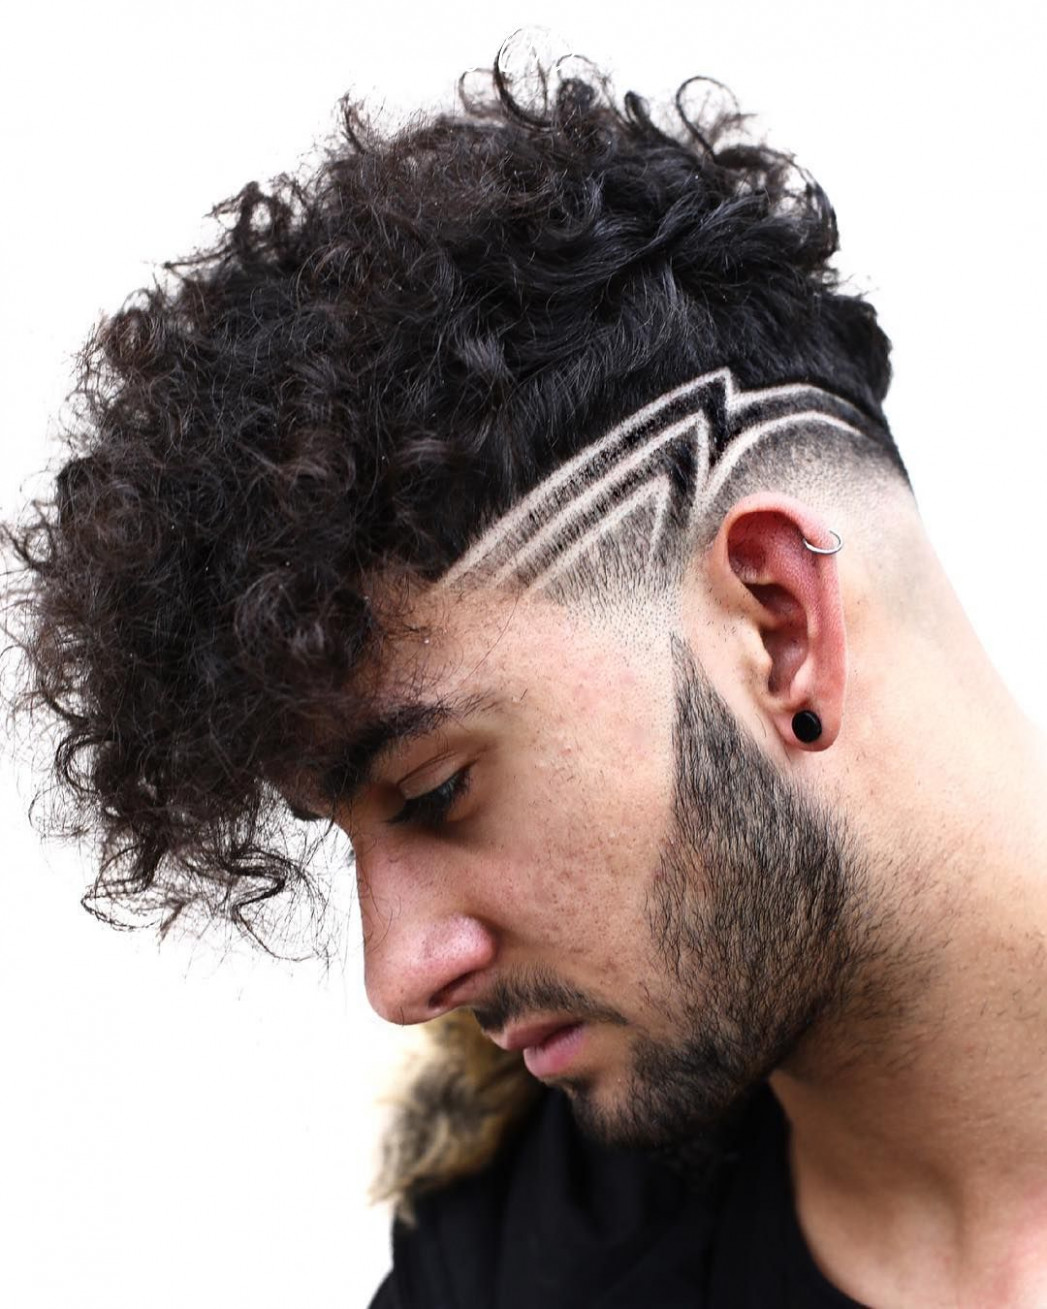 Curly hair: the best haircuts hairstyles for men (8 styles